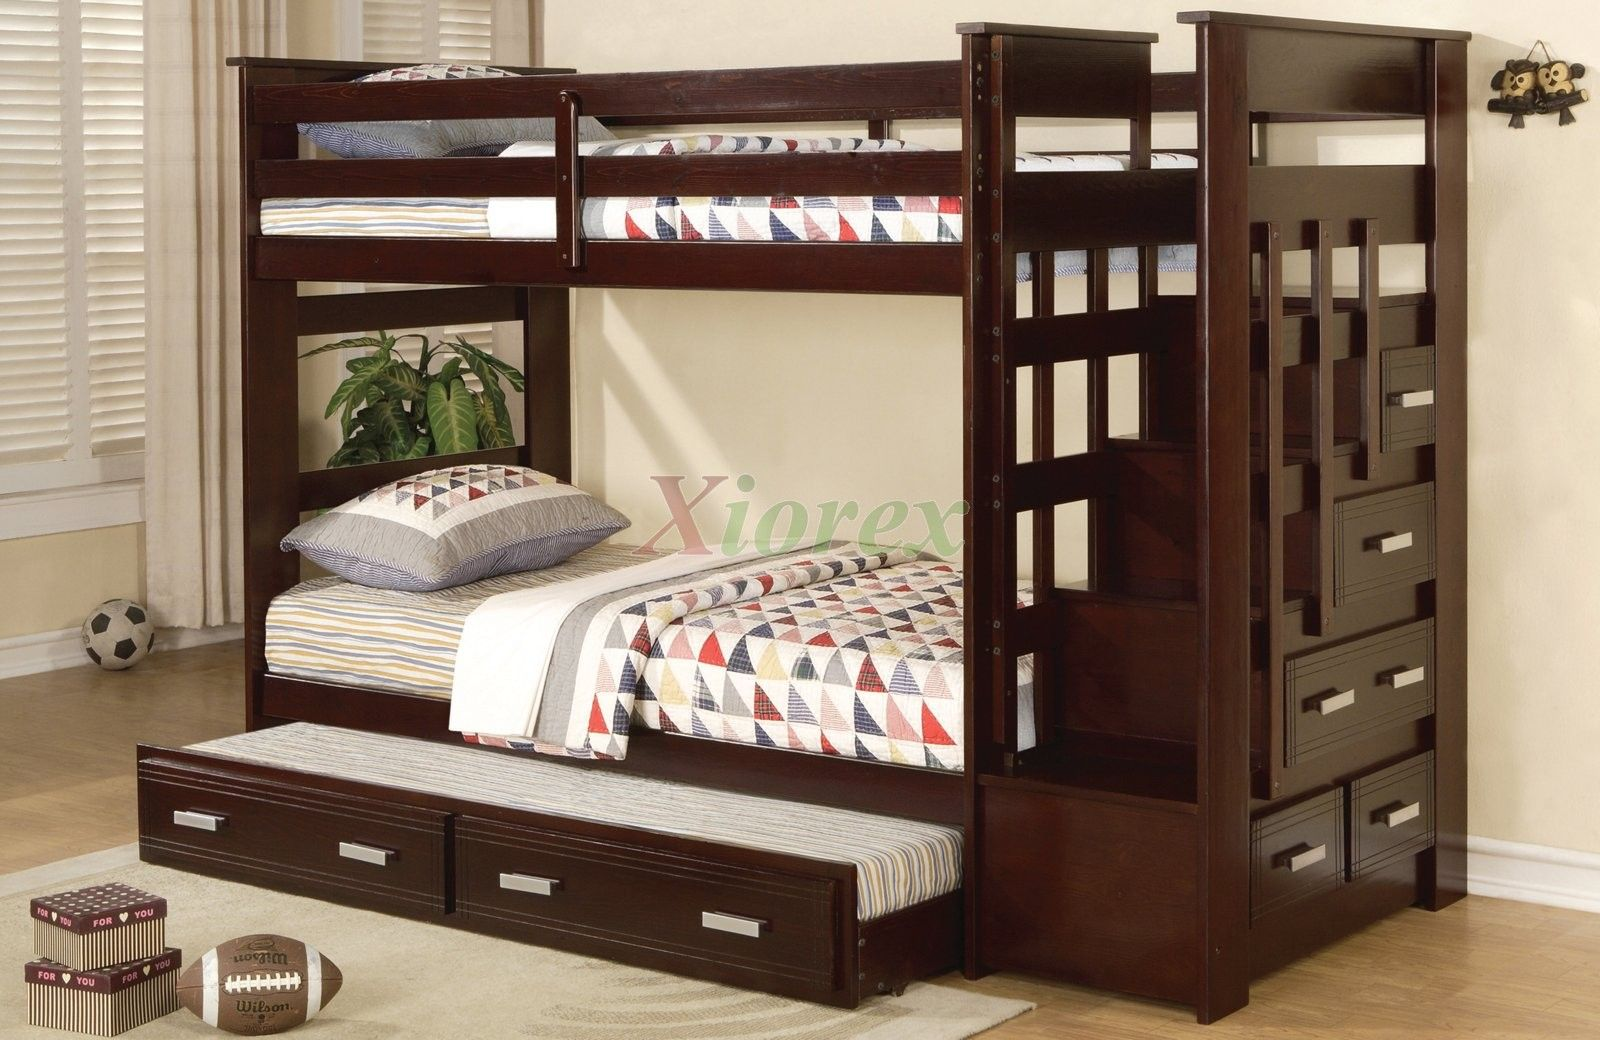 Loft bed with storage stairs  Acrux Twin Bunk Bed with Stairs and Trundle Bed in Espresso  Xiorex